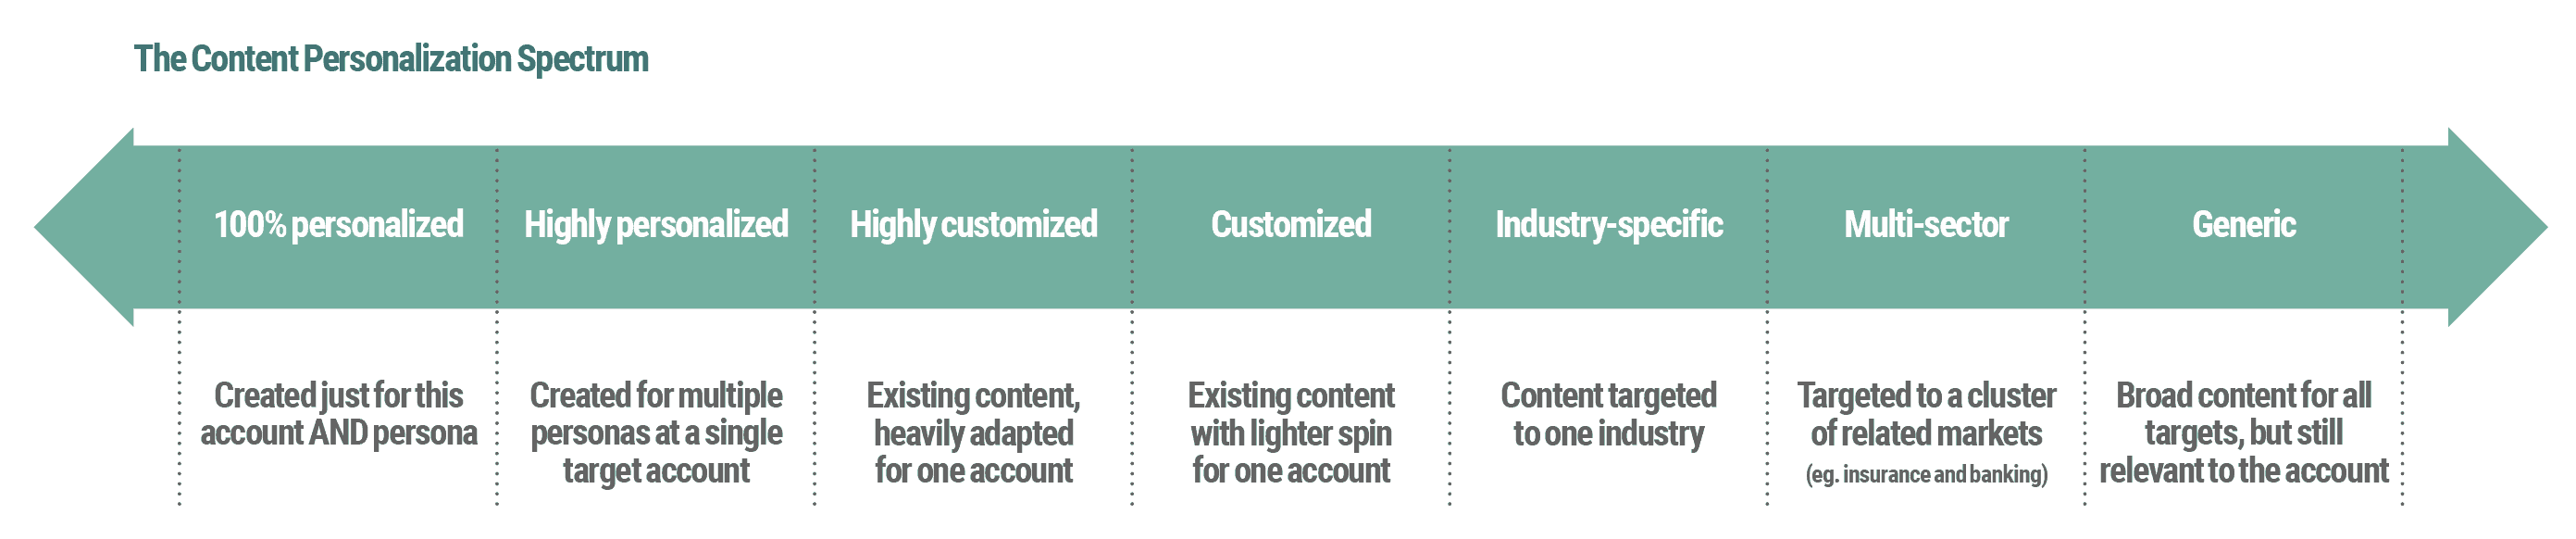 Account Based Marketing Tactics Content Personalization Spectrum